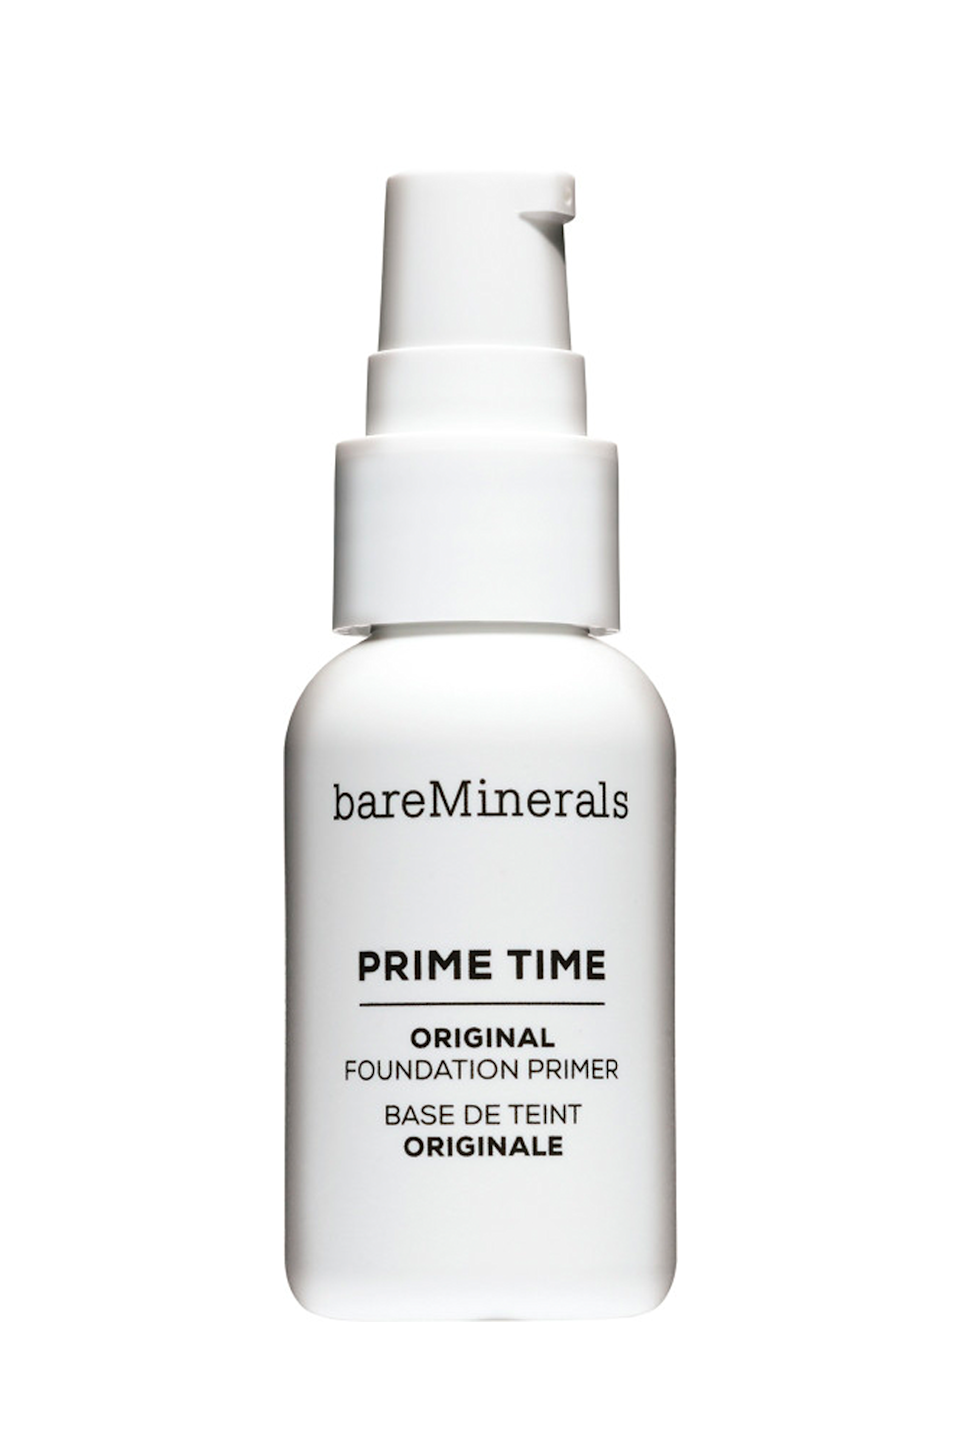 """<p><strong>bareMinerals</strong></p><p>ulta.com</p><p><a href=""""https://go.redirectingat.com?id=74968X1596630&url=https%3A%2F%2Fwww.ulta.com%2Fprime-time-foundation-primer%3FproductId%3Dprod2138921&sref=https%3A%2F%2Fwww.redbookmag.com%2Fbeauty%2Fg34807817%2Fulta-black-friday-cyber-monday-deals-2020%2F"""" rel=""""nofollow noopener"""" target=""""_blank"""" data-ylk=""""slk:Shop Now"""" class=""""link rapid-noclick-resp"""">Shop Now</a></p><p><strong><del>$26</del> $13</strong></p><p>There's nothing worse than slathering on a new foundation only to have it pill and cake halfway through the day. This long-lasting <a href=""""https://www.cosmopolitan.com/style-beauty/beauty/a28916977/primer-makeup-benefits/"""" rel=""""nofollow noopener"""" target=""""_blank"""" data-ylk=""""slk:primer"""" class=""""link rapid-noclick-resp"""">primer</a> from BareMinerals helps your makeup stay put—and it's <strong>50% off</strong>.</p>"""